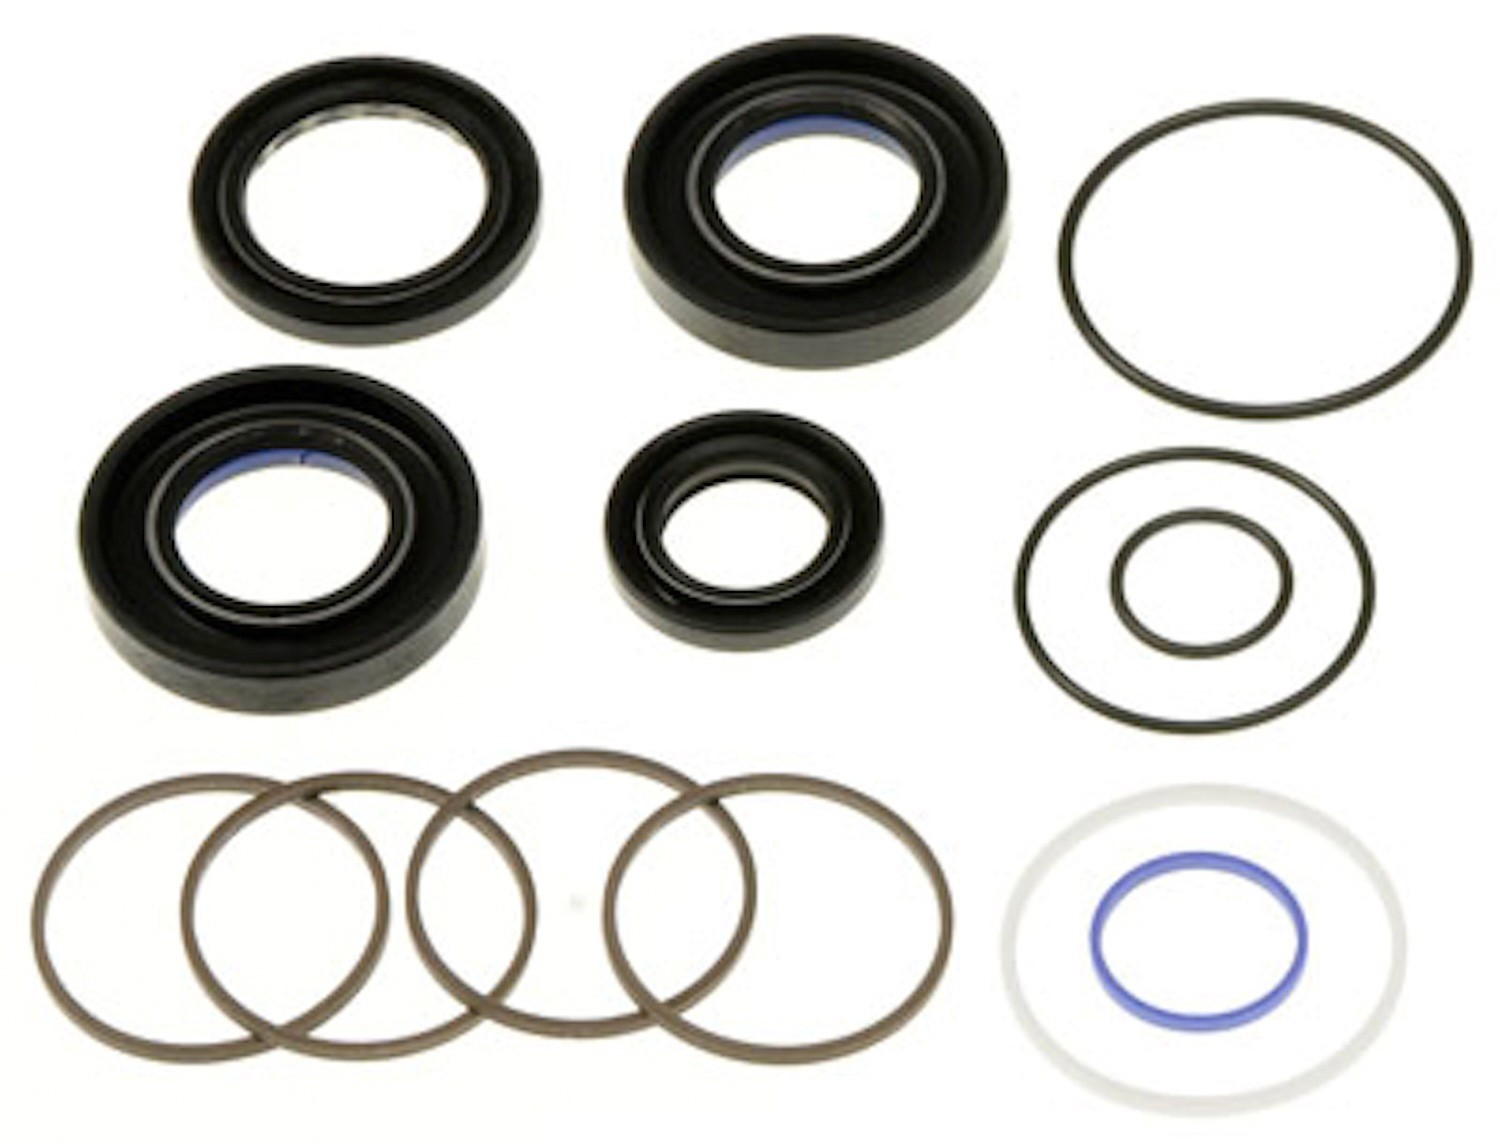 Acura TL Rack And Pinion Seal Kit AutoPartsKartcom - Acura tl rack and pinion